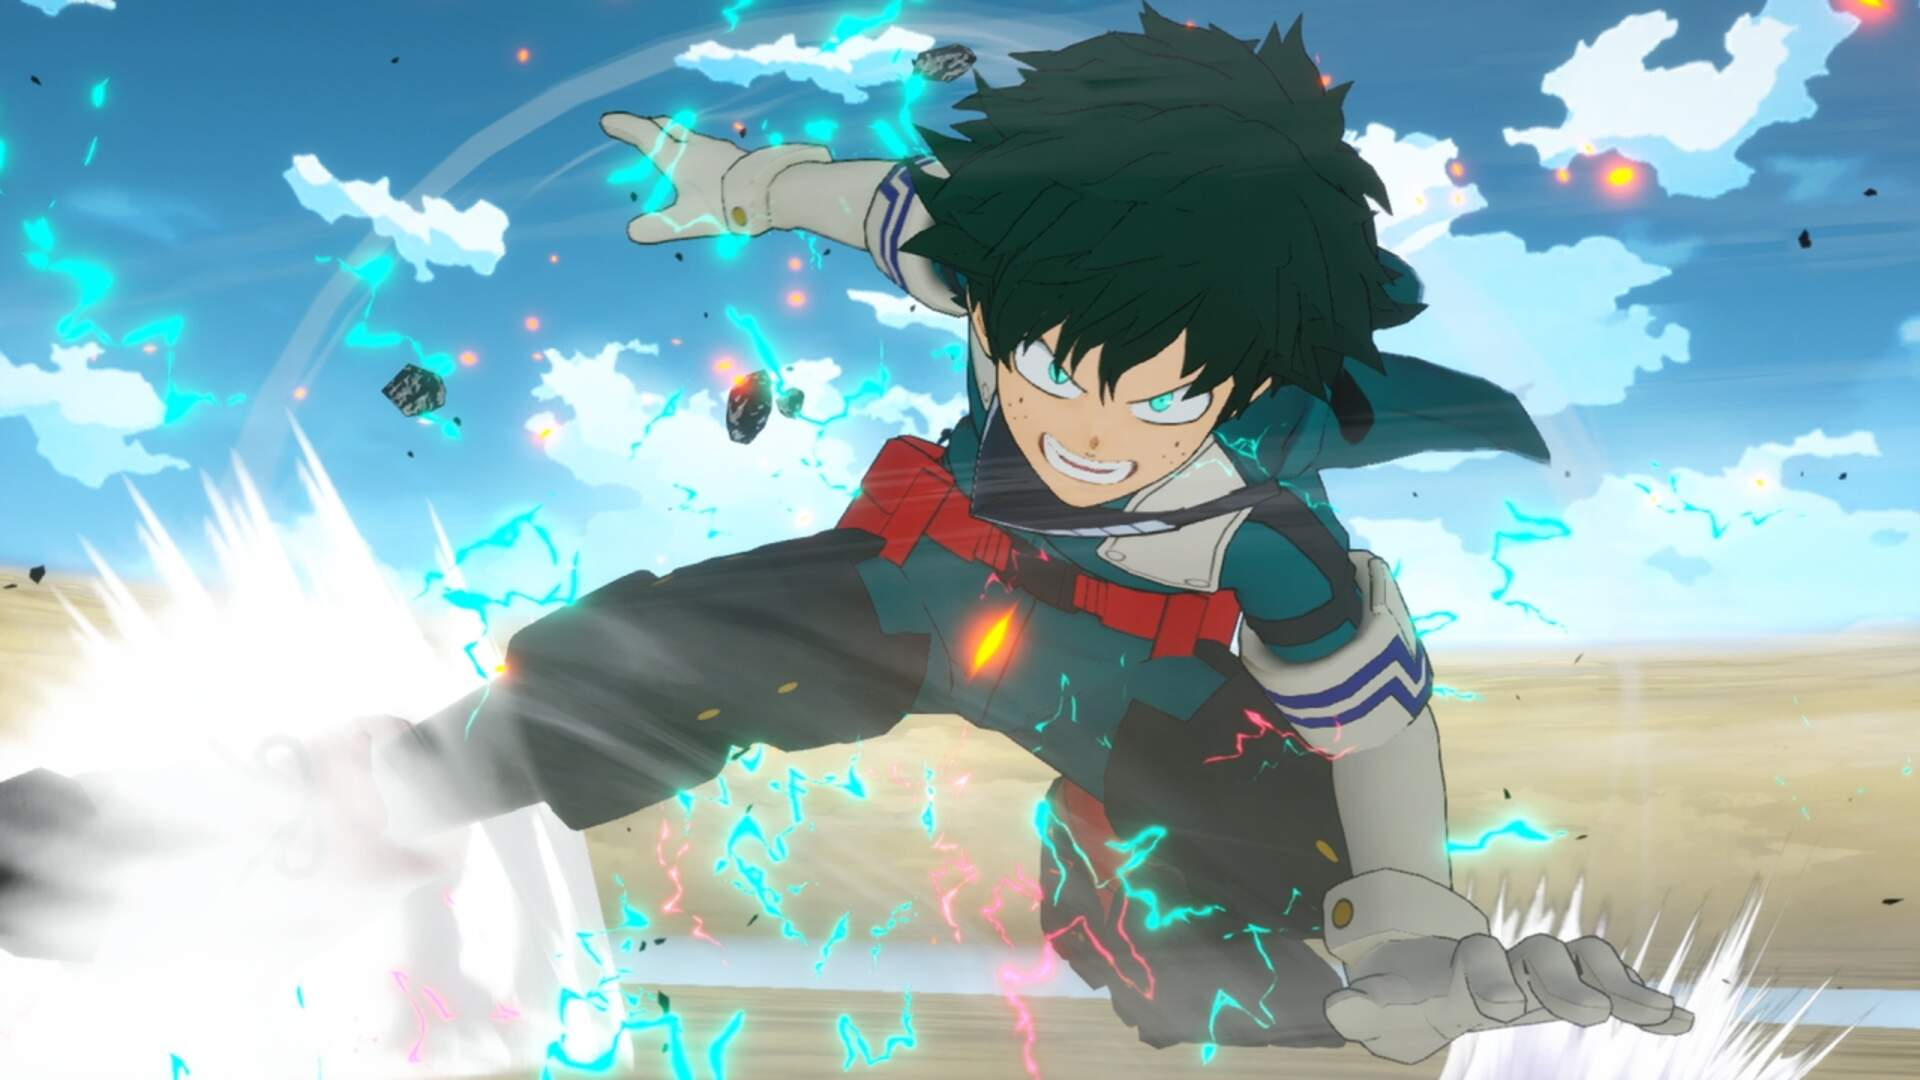 The New My Hero Academia Game Will Follow Season 4 of the Anime, Coming 2020